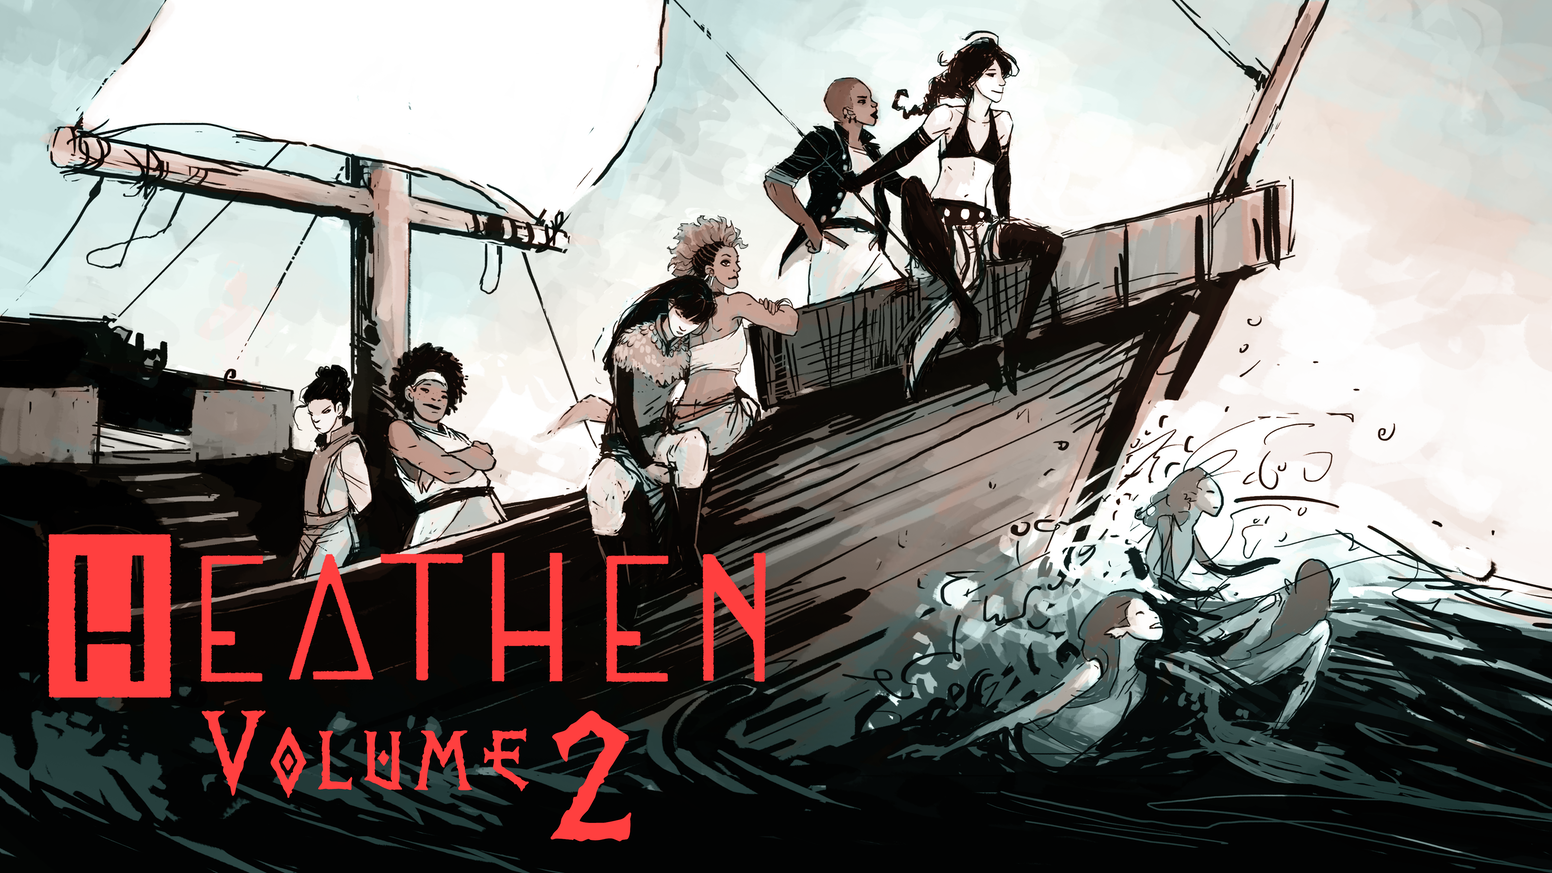 The second volume in the critically acclaimed feminist lesbian viking comic, Heathen. Let's make 4 more issues!